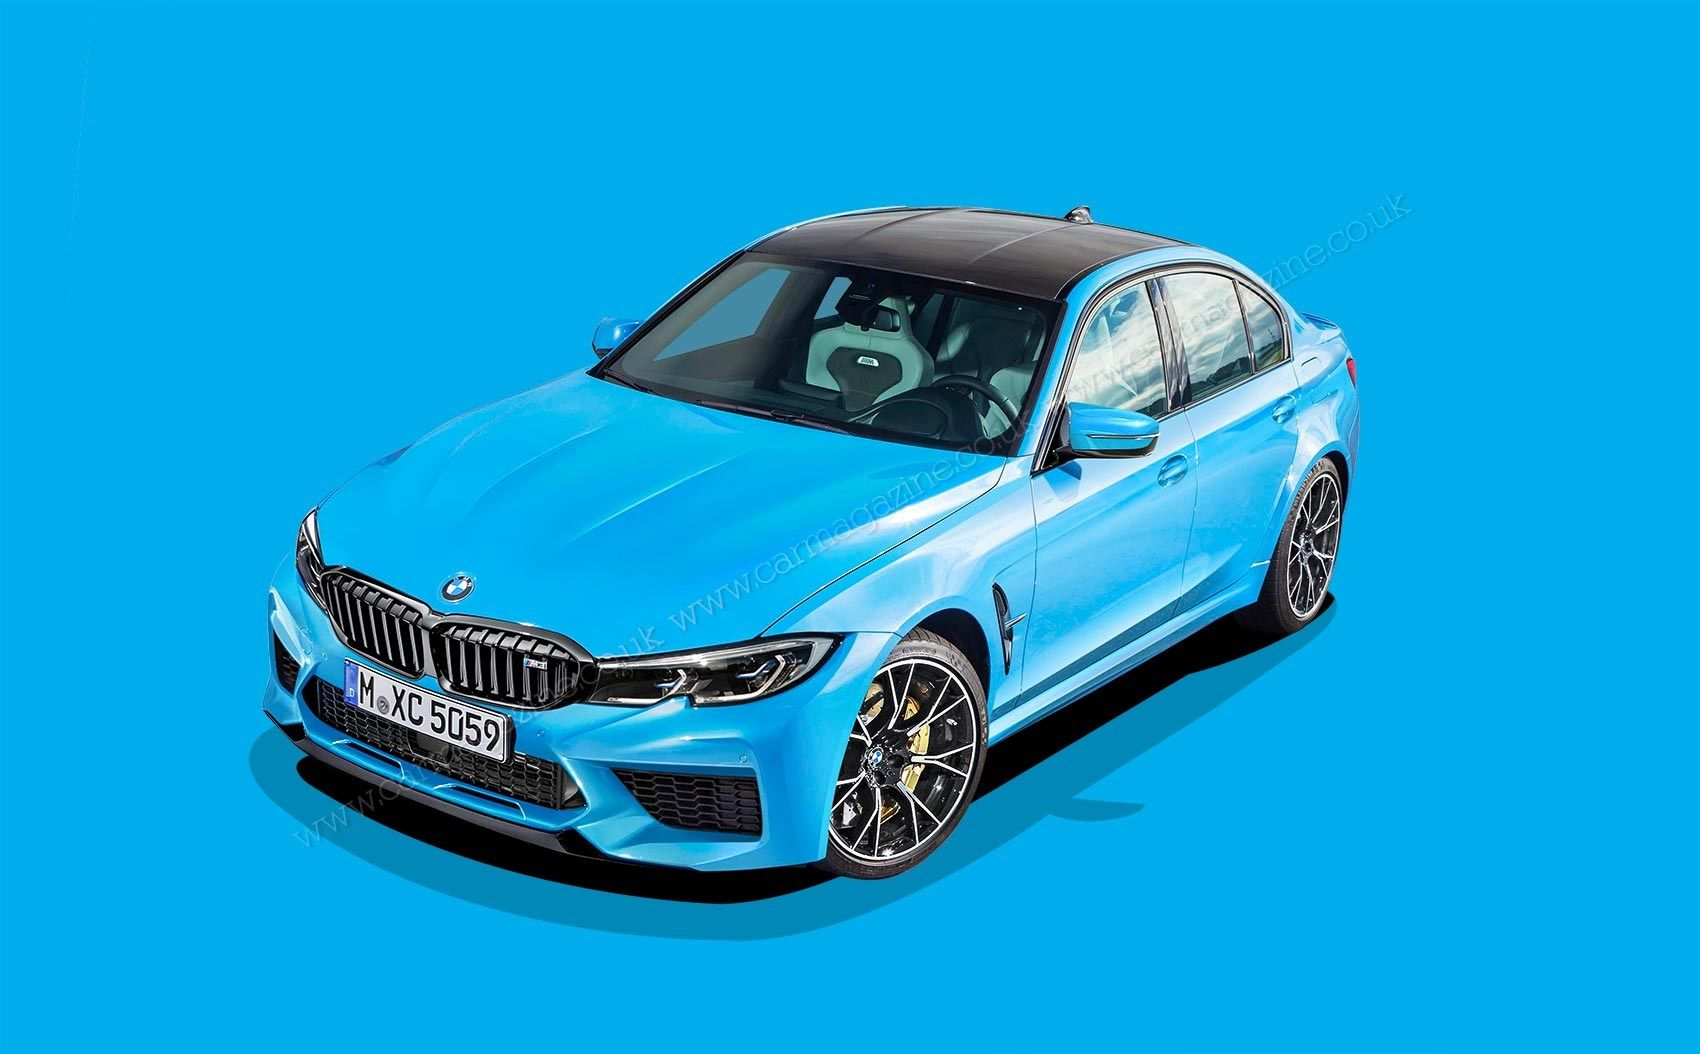 2020 Bmw Vehicles Concept,and Rumor in 2020 Bmw, Bmw